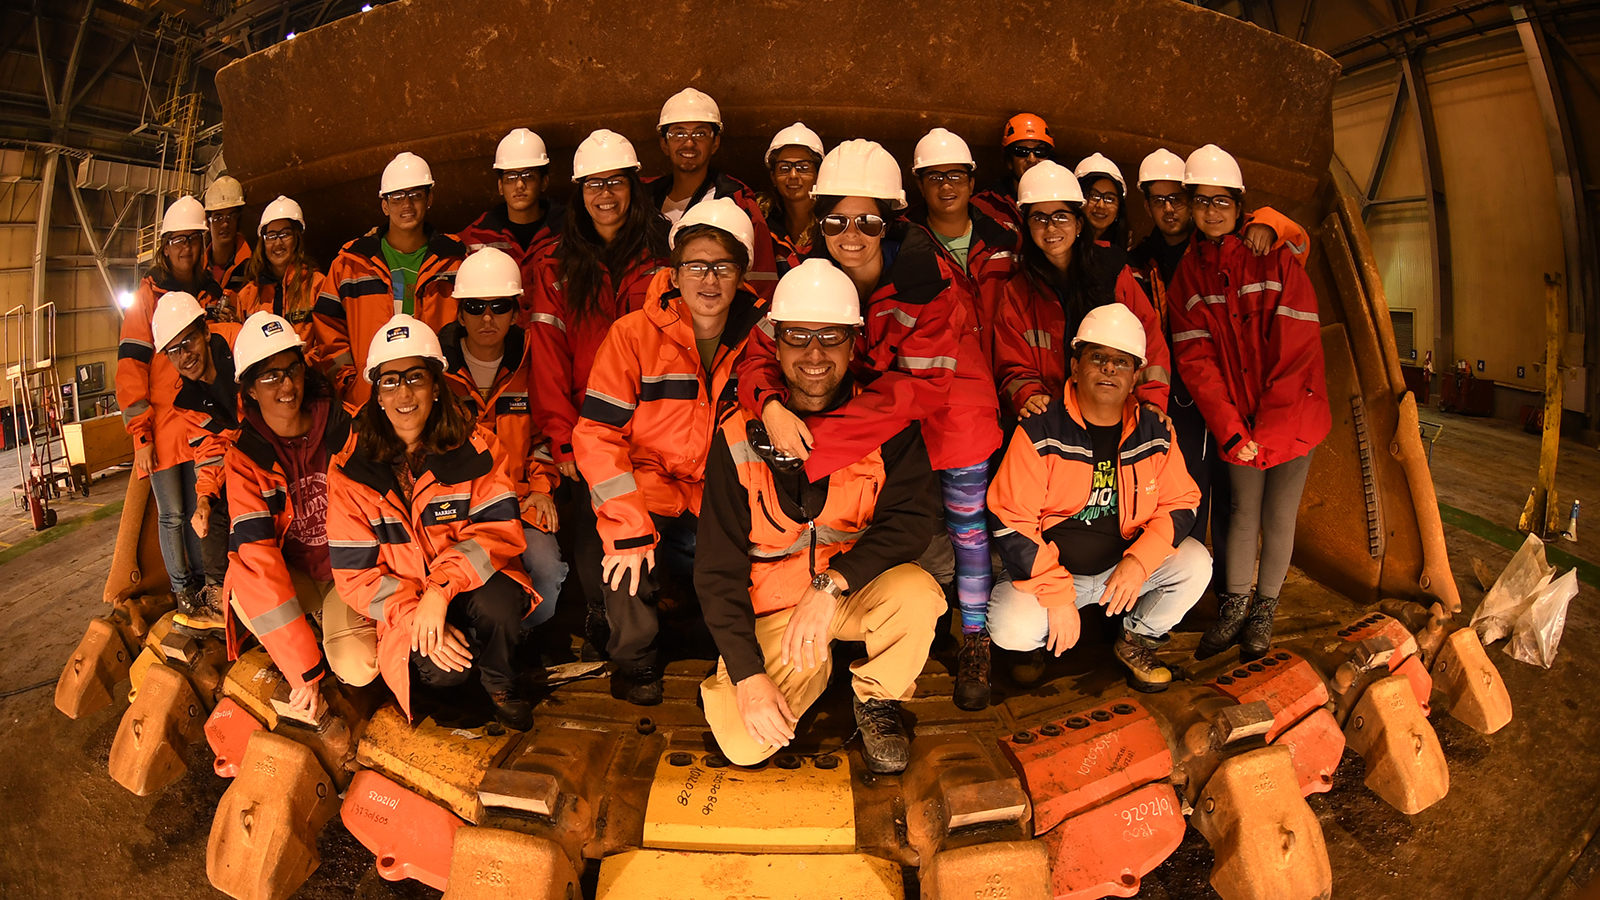 Barrick promotes a culture of continuous learning through groupwide programs designed to develop a foundation of operational knowledge and management skills.